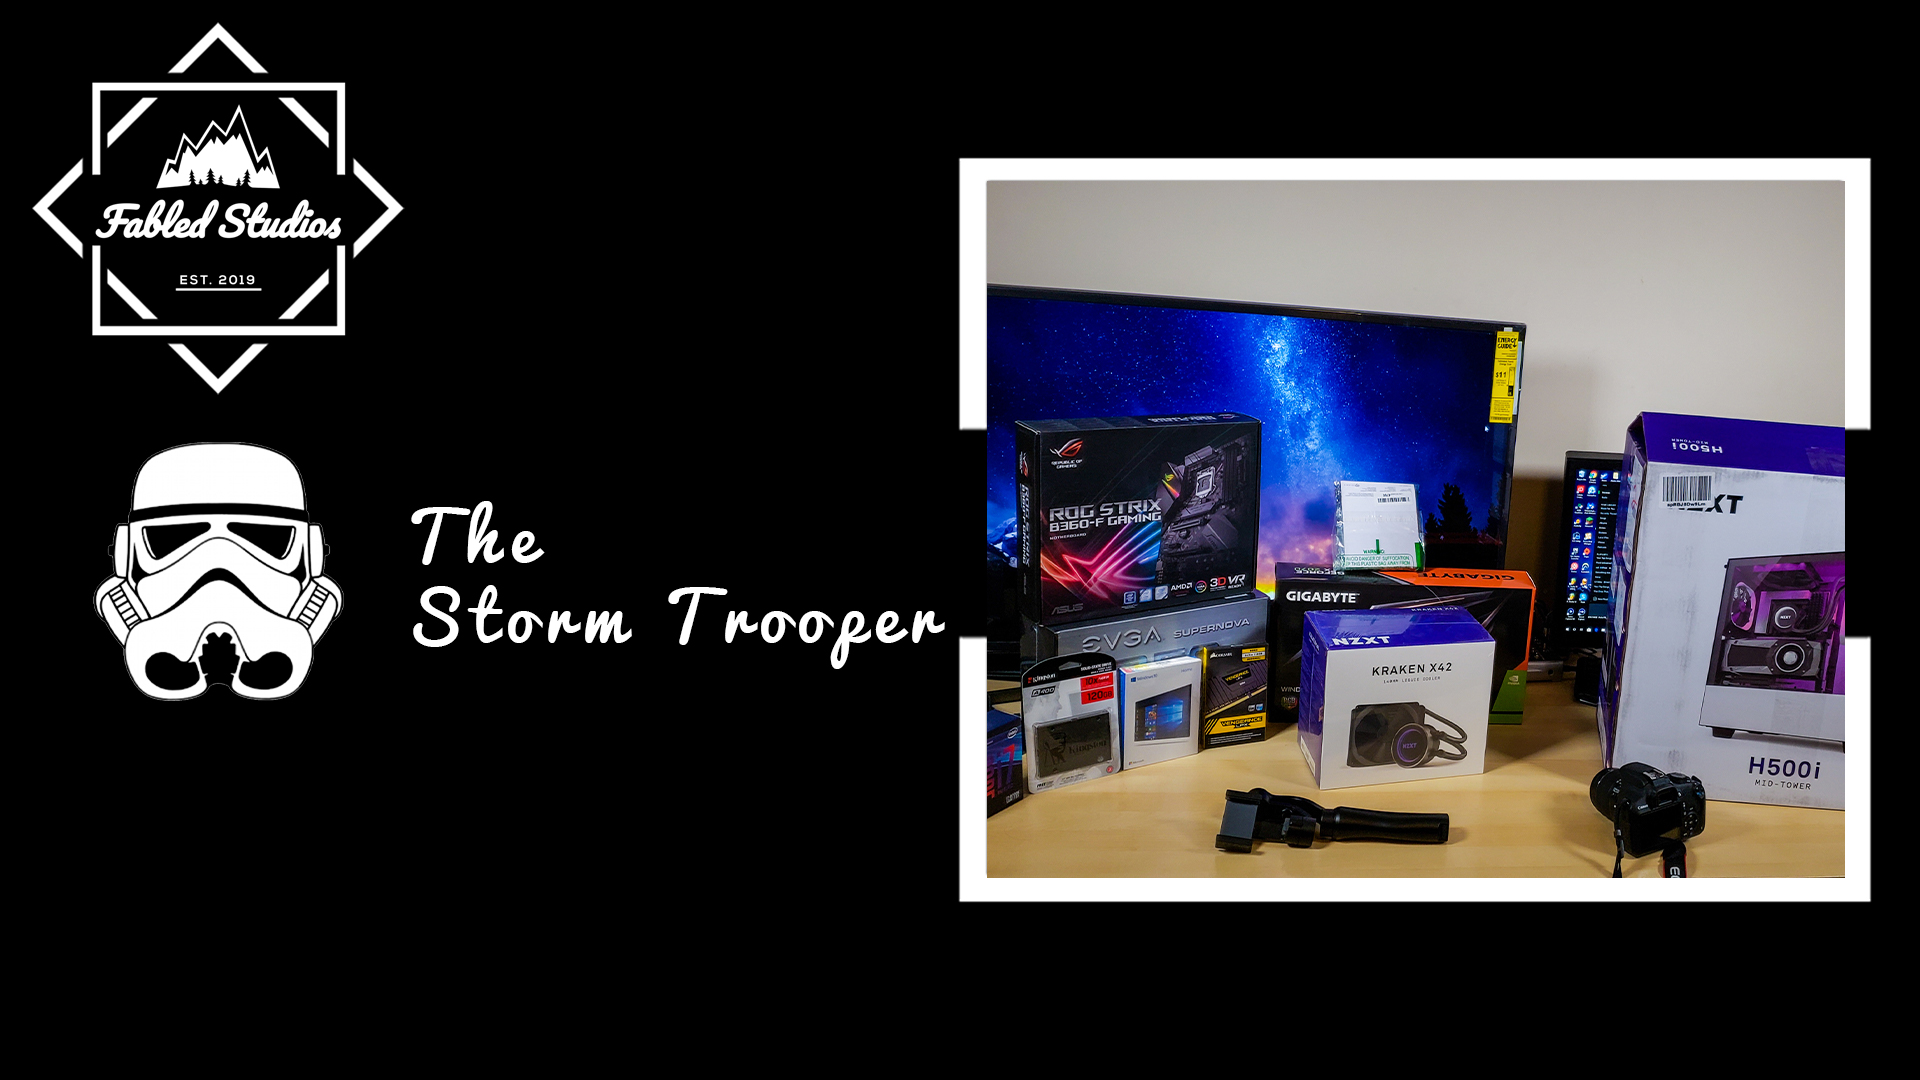 The Storm Trooper - This computer was built one month ago! Specifically made for gaming and animation in mind!Inside this beauty, a 8th Gen i7, Kraken CPU Cooler, RTX 2070, 16 GB of DDR4 Corsair Vengeance Ram, ASUS ROG STRIX MB, 1TB HDD, 128GB SSD, 750W PSU, Windows 10, all inside a NZXT H500i Case!